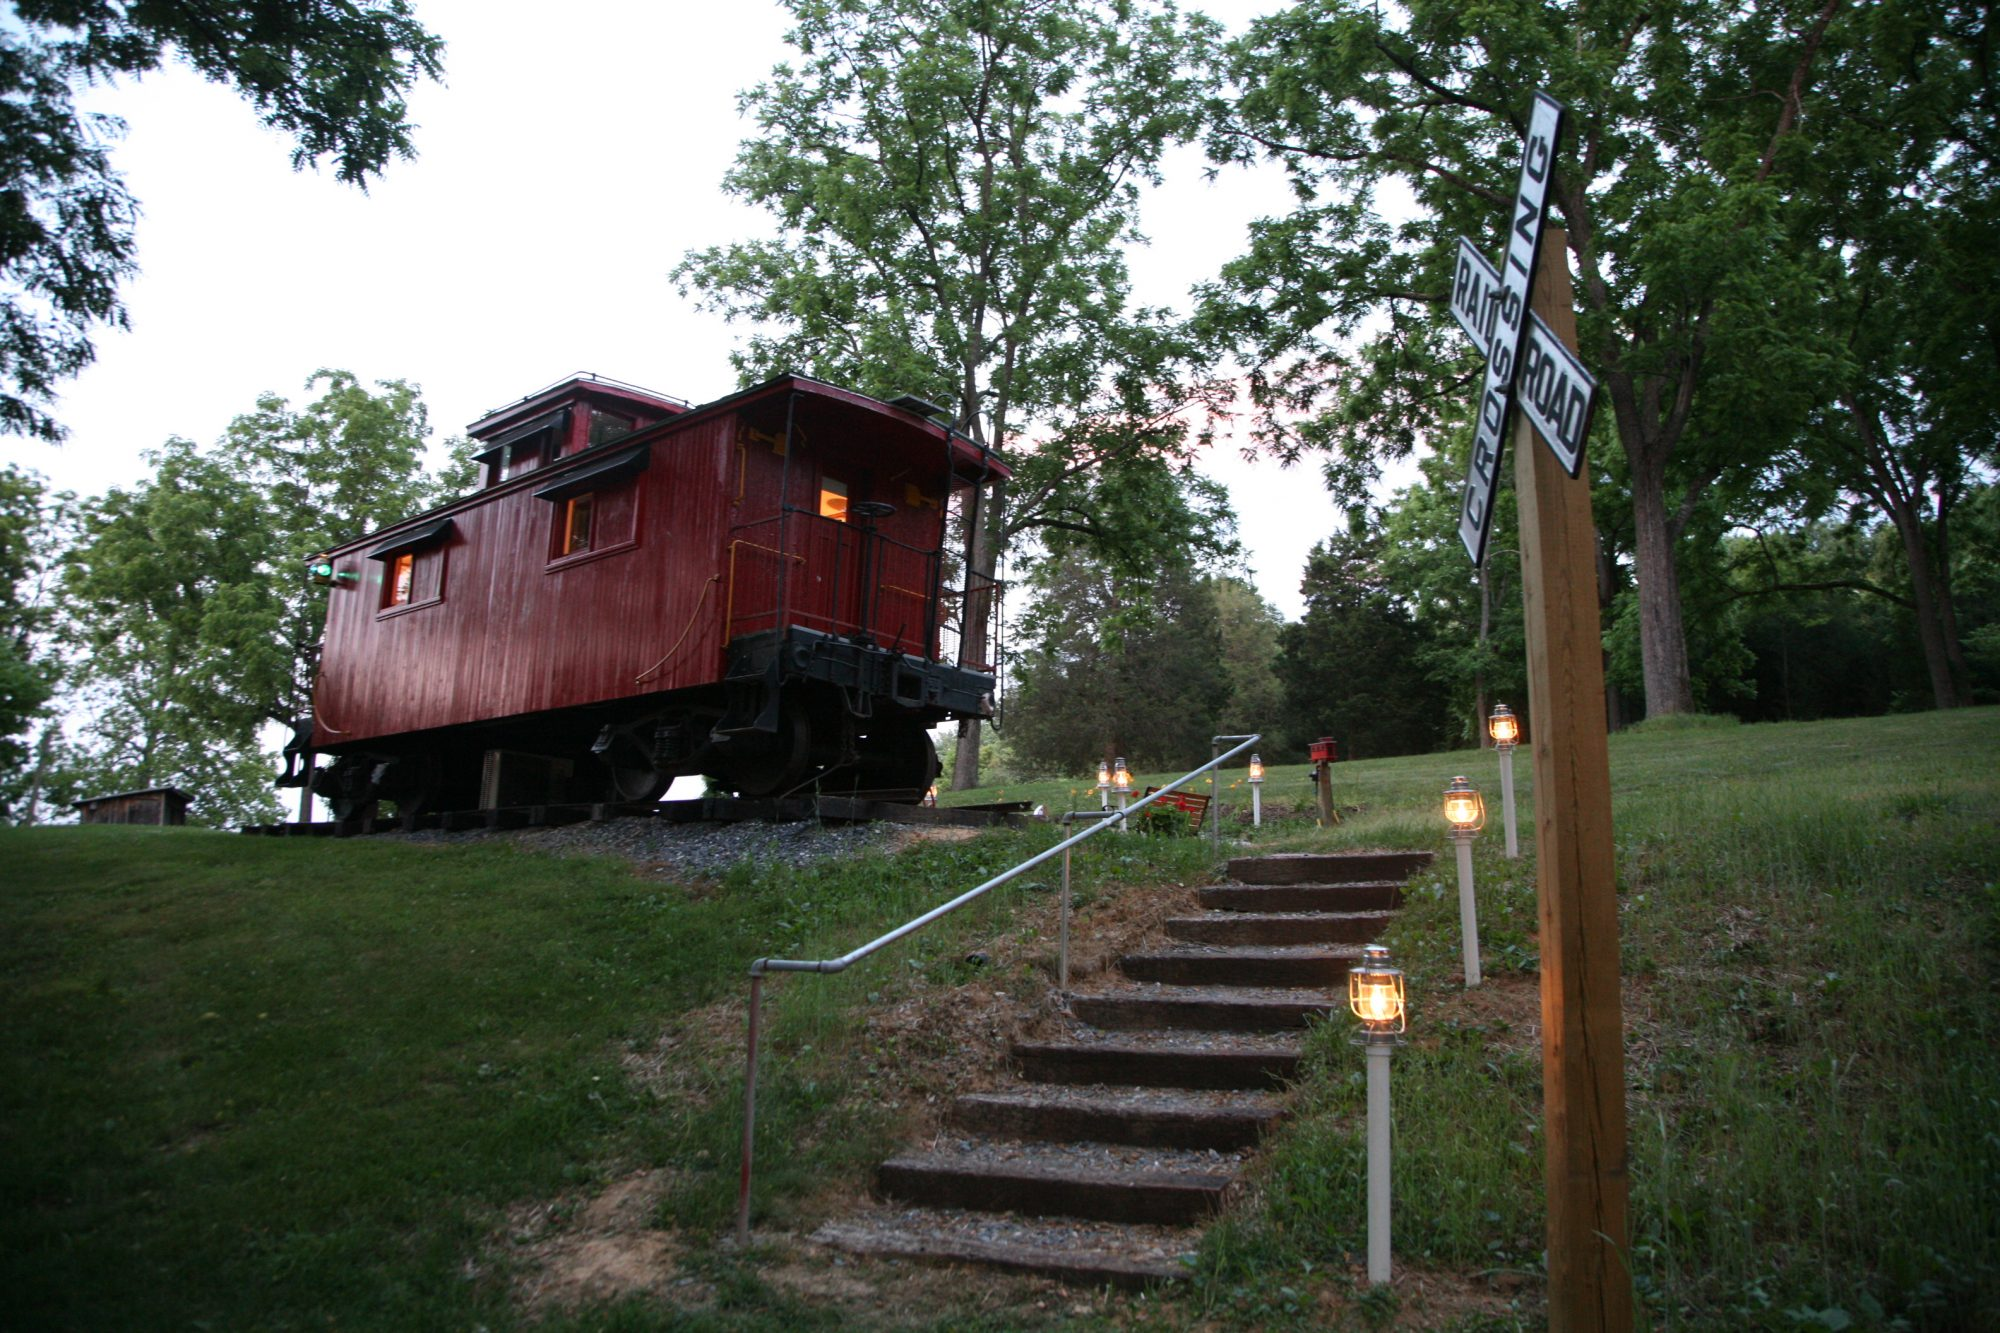 1926 C&O Caboose in Natural Bridge, Virginia